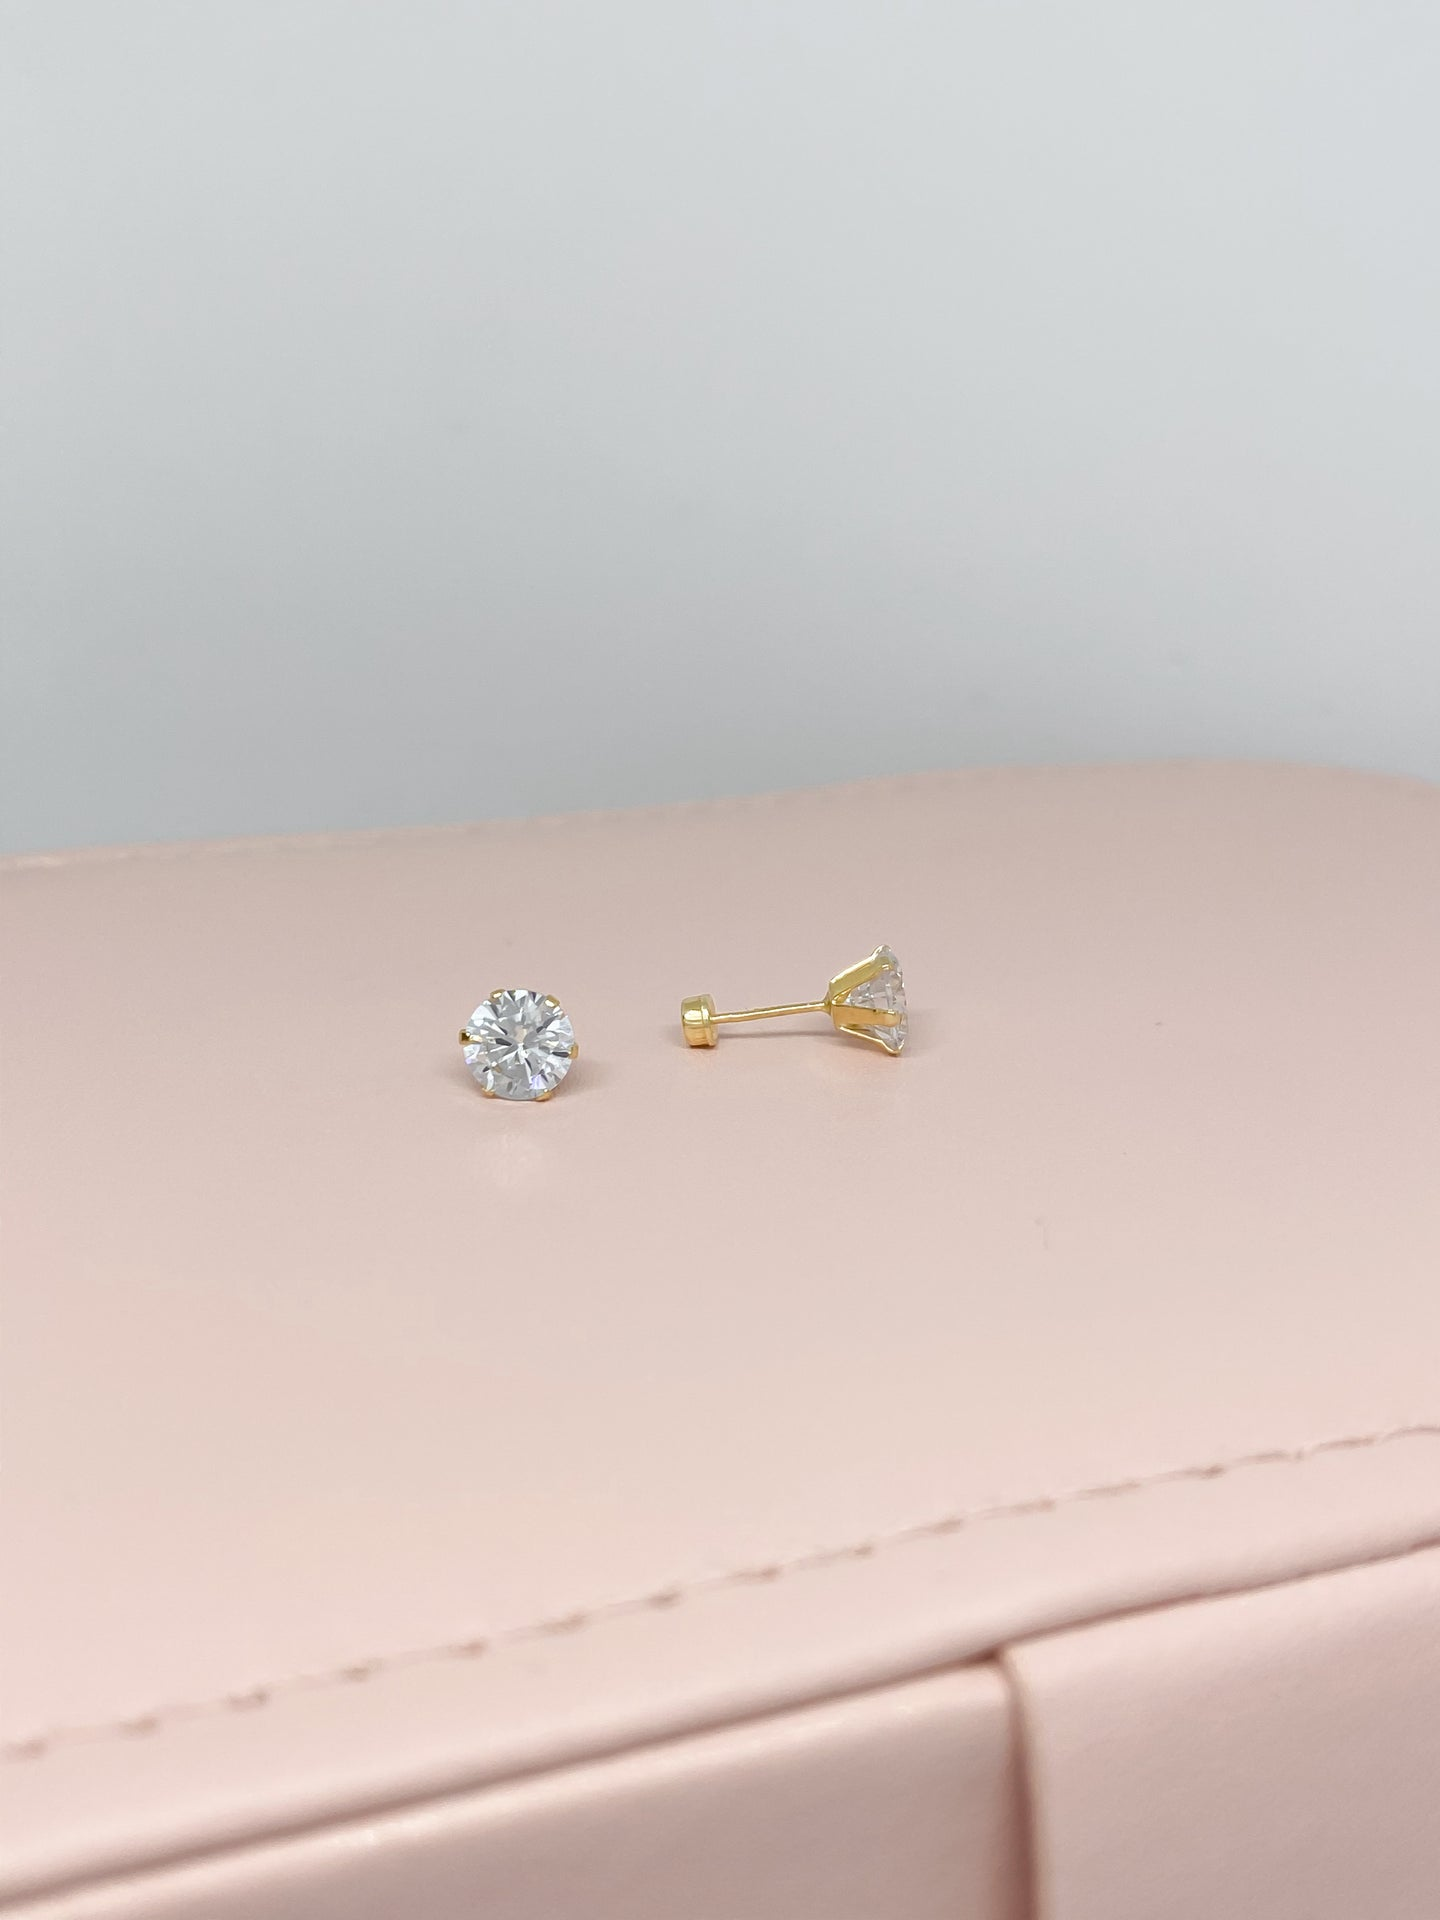 Broquel Recto 6 mm Zirconia